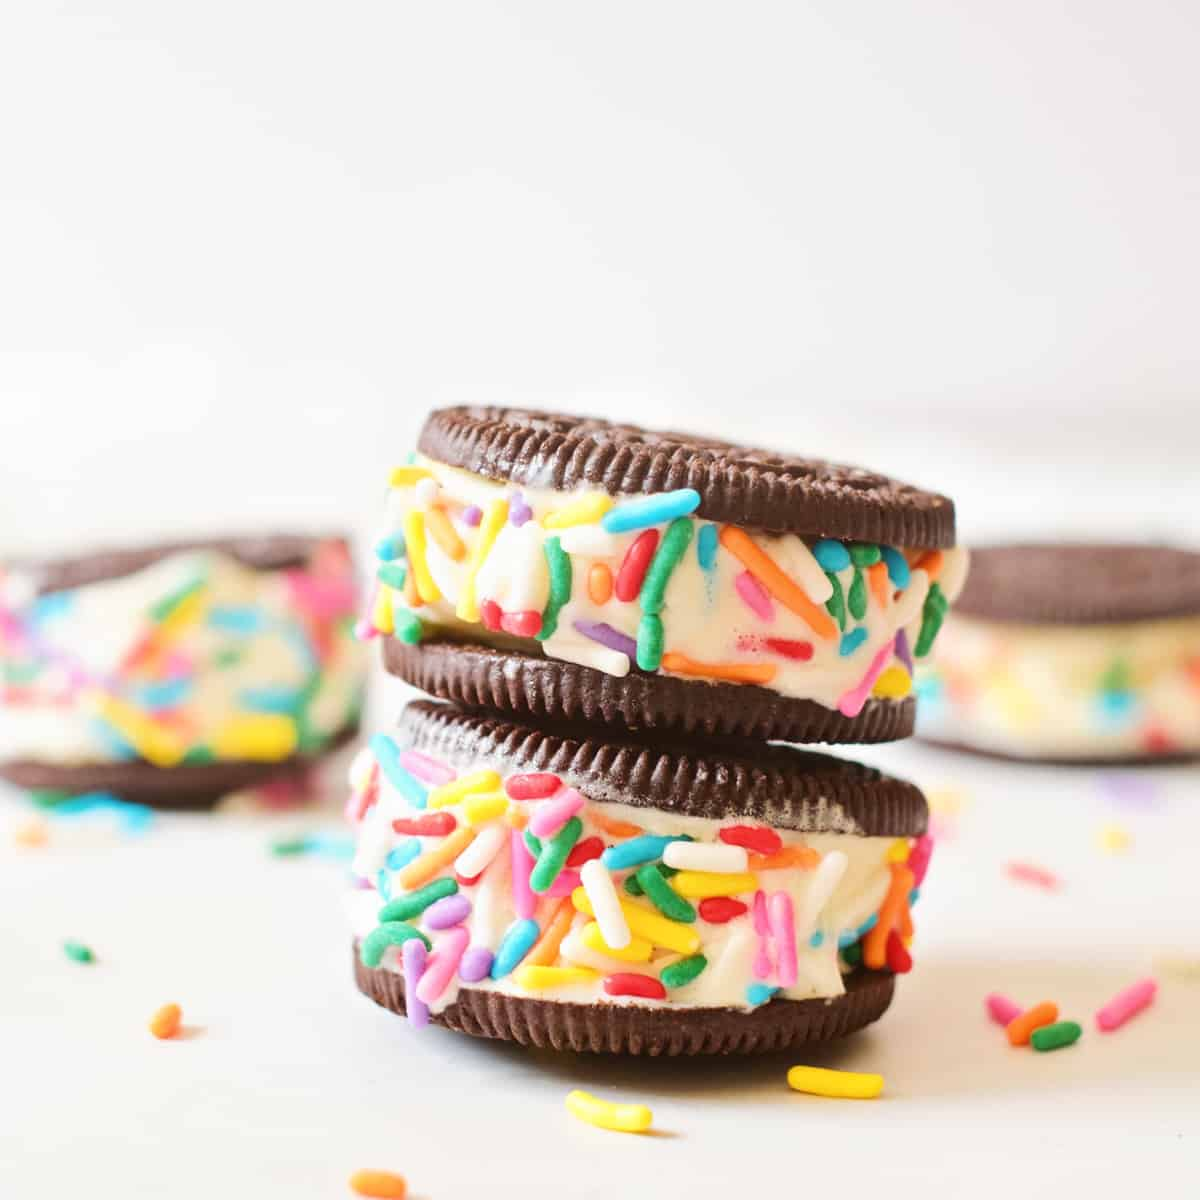 Oreo Cookie Ice Cream Sandwich – Cute and Easy Frozen Treat for Kids